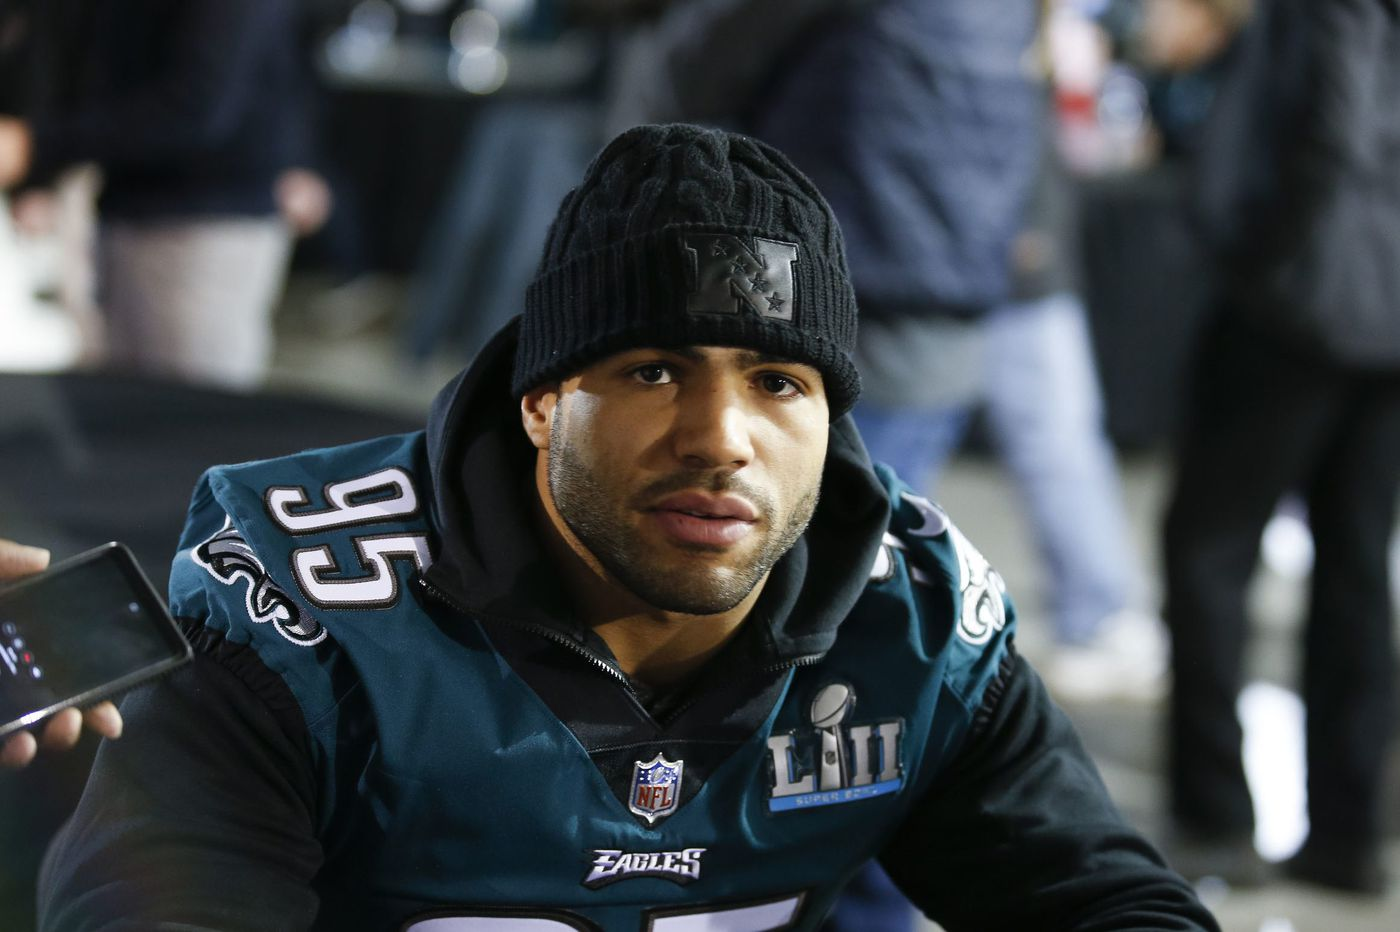 Ex-Eagle Mychal Kendricks signs with Seahawks following guilty plea for insider trading